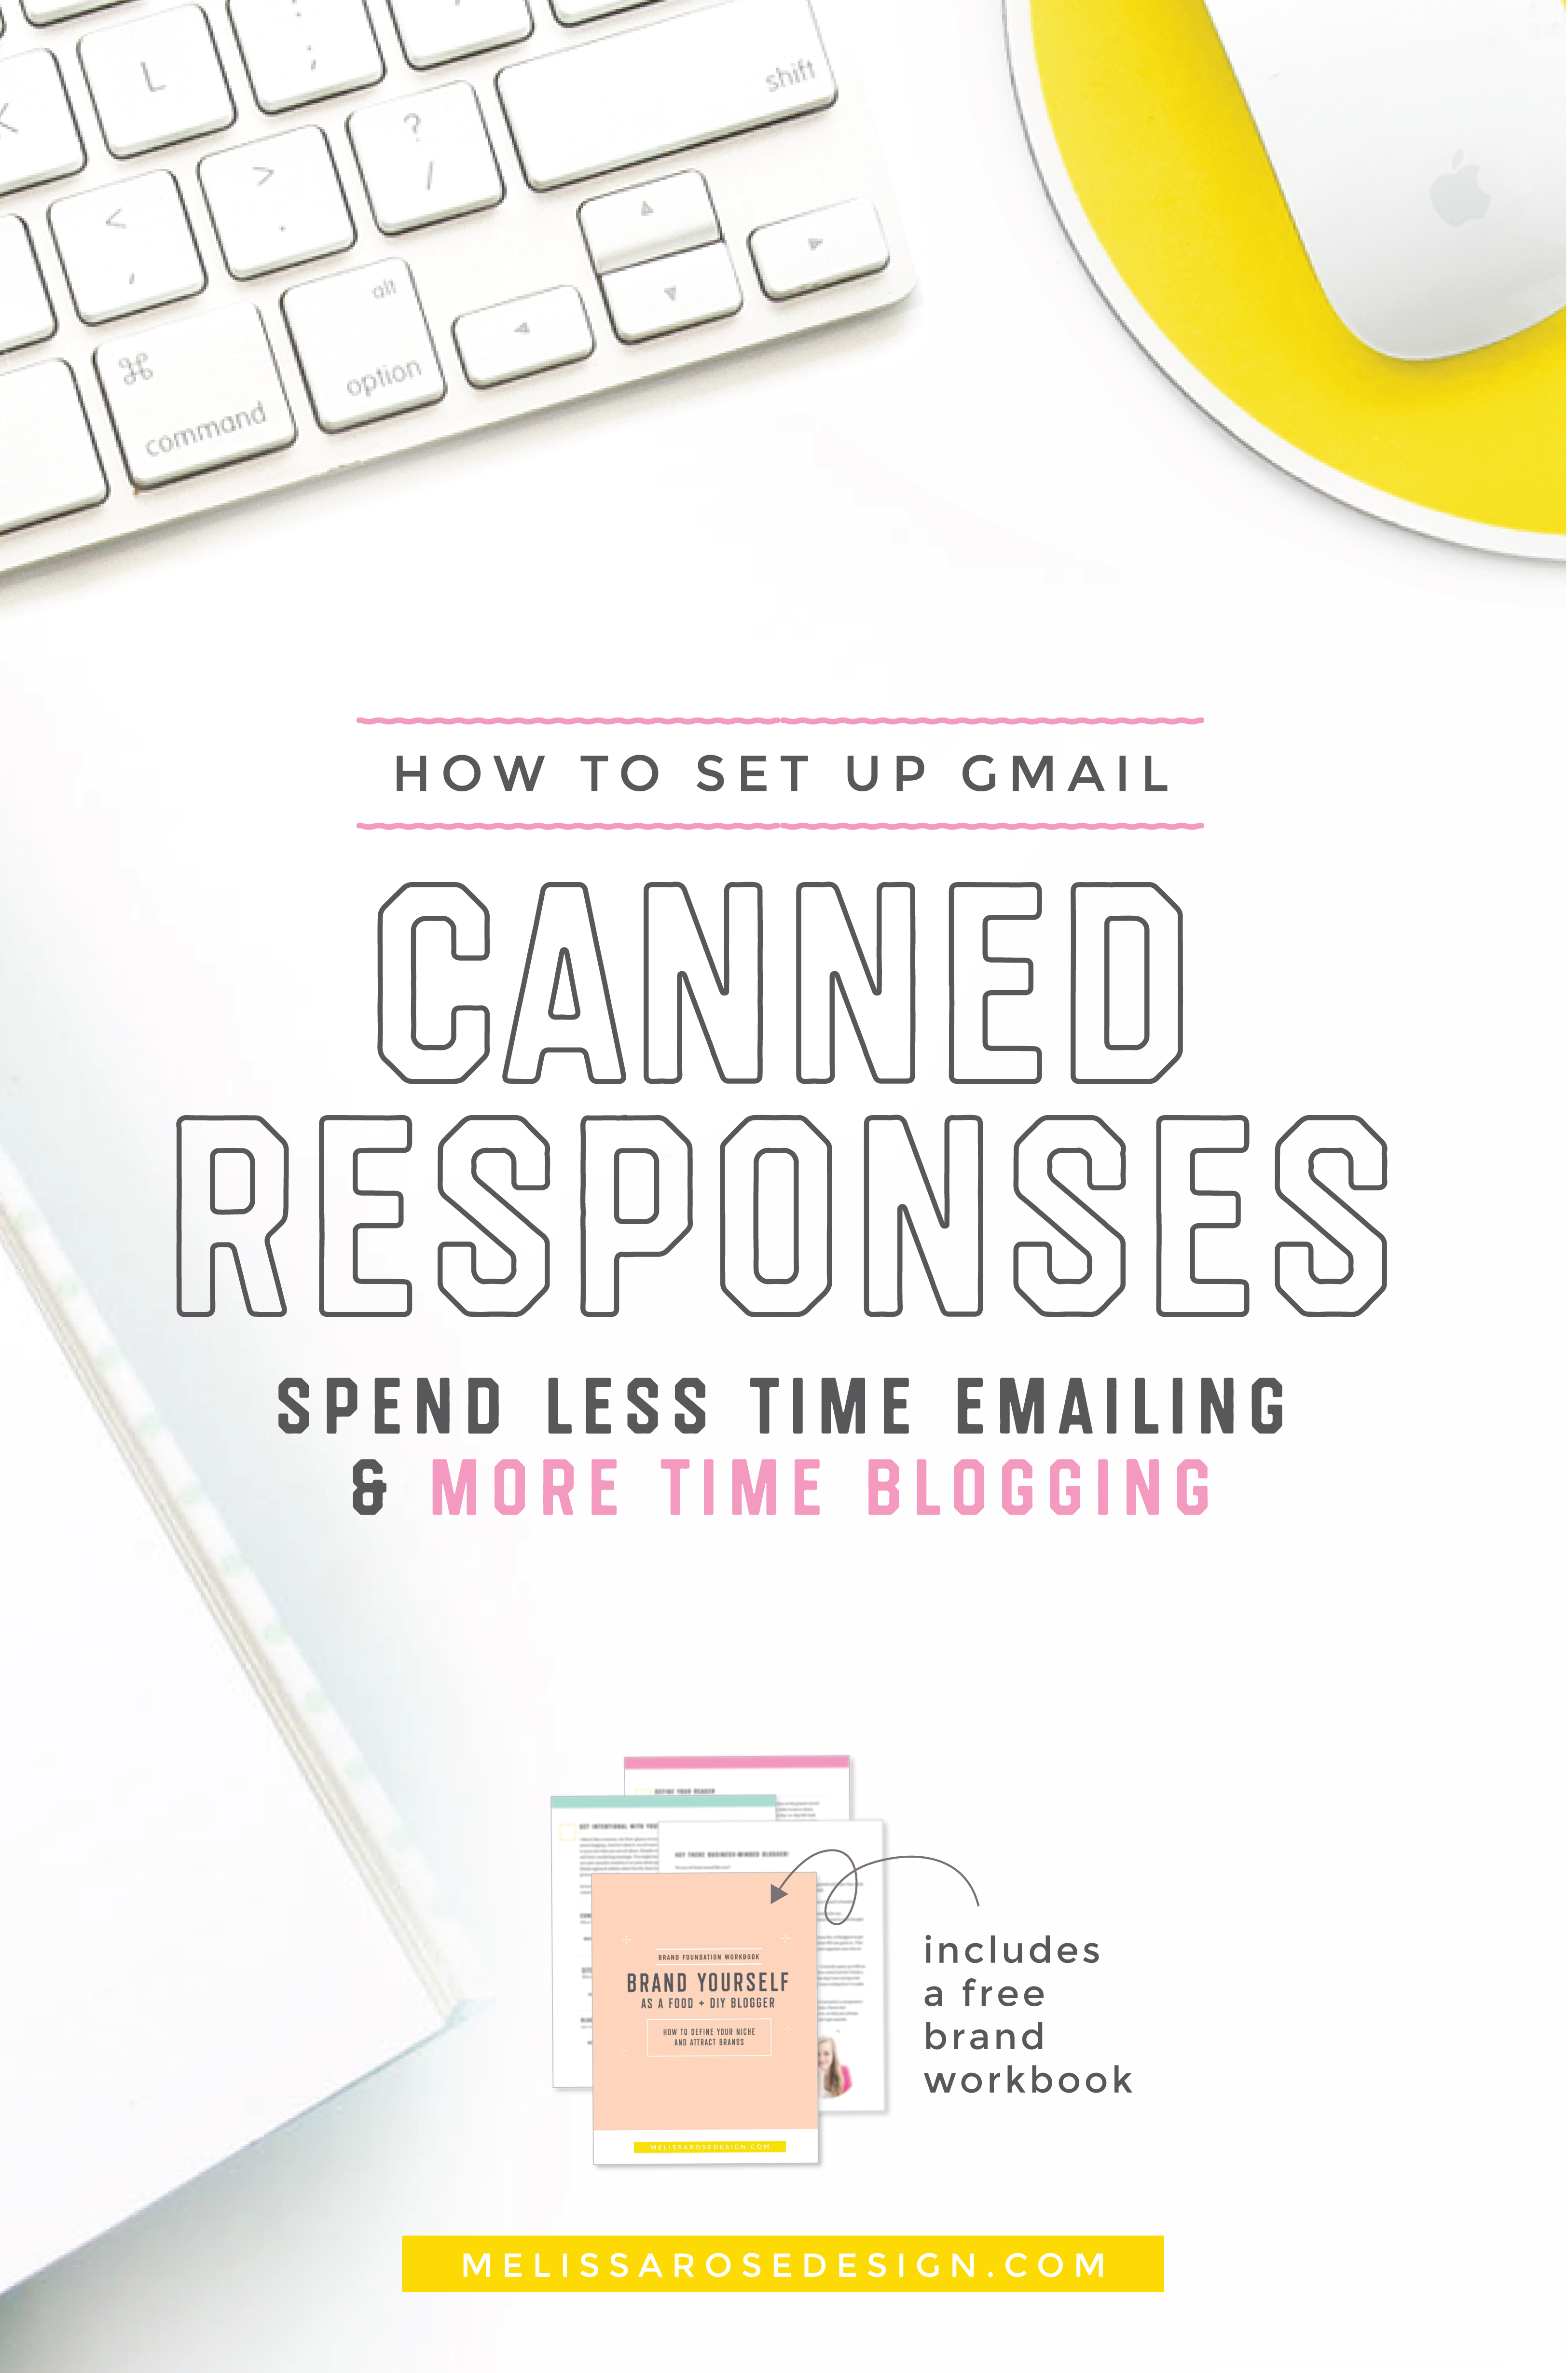 Spend less time emailing & more time blogging by setting up canned responses for emails you send often. Read the post for a step-by-step guide for setting it up in Gmail. | #Blogging #FoodBlog | melissarosedesign.com